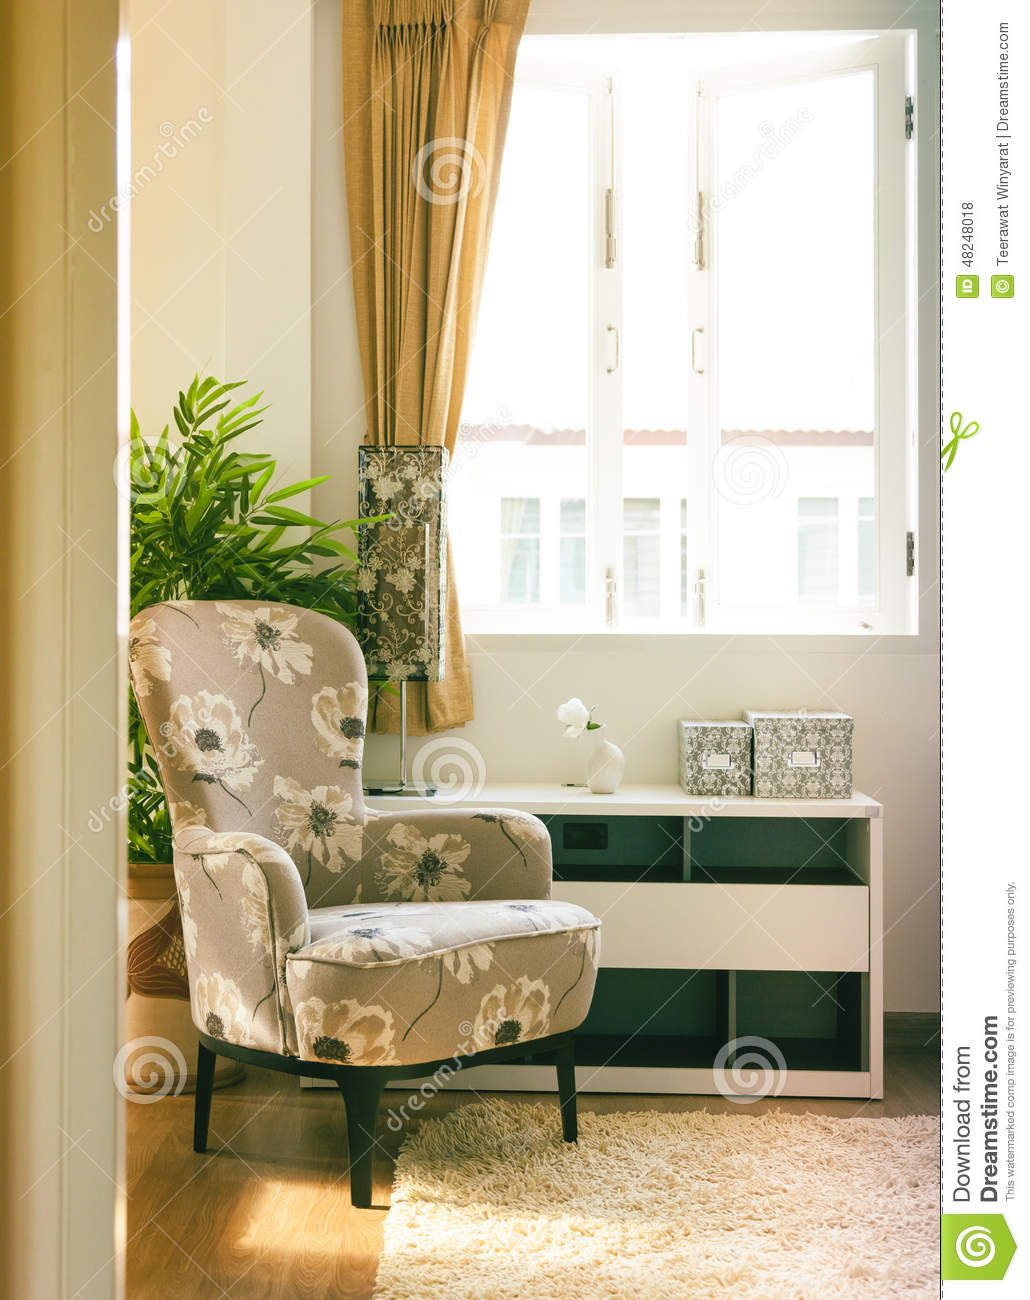 D coration int rieure de maison de fauteuil de salon photo stock image 48248018 for Interieure maison